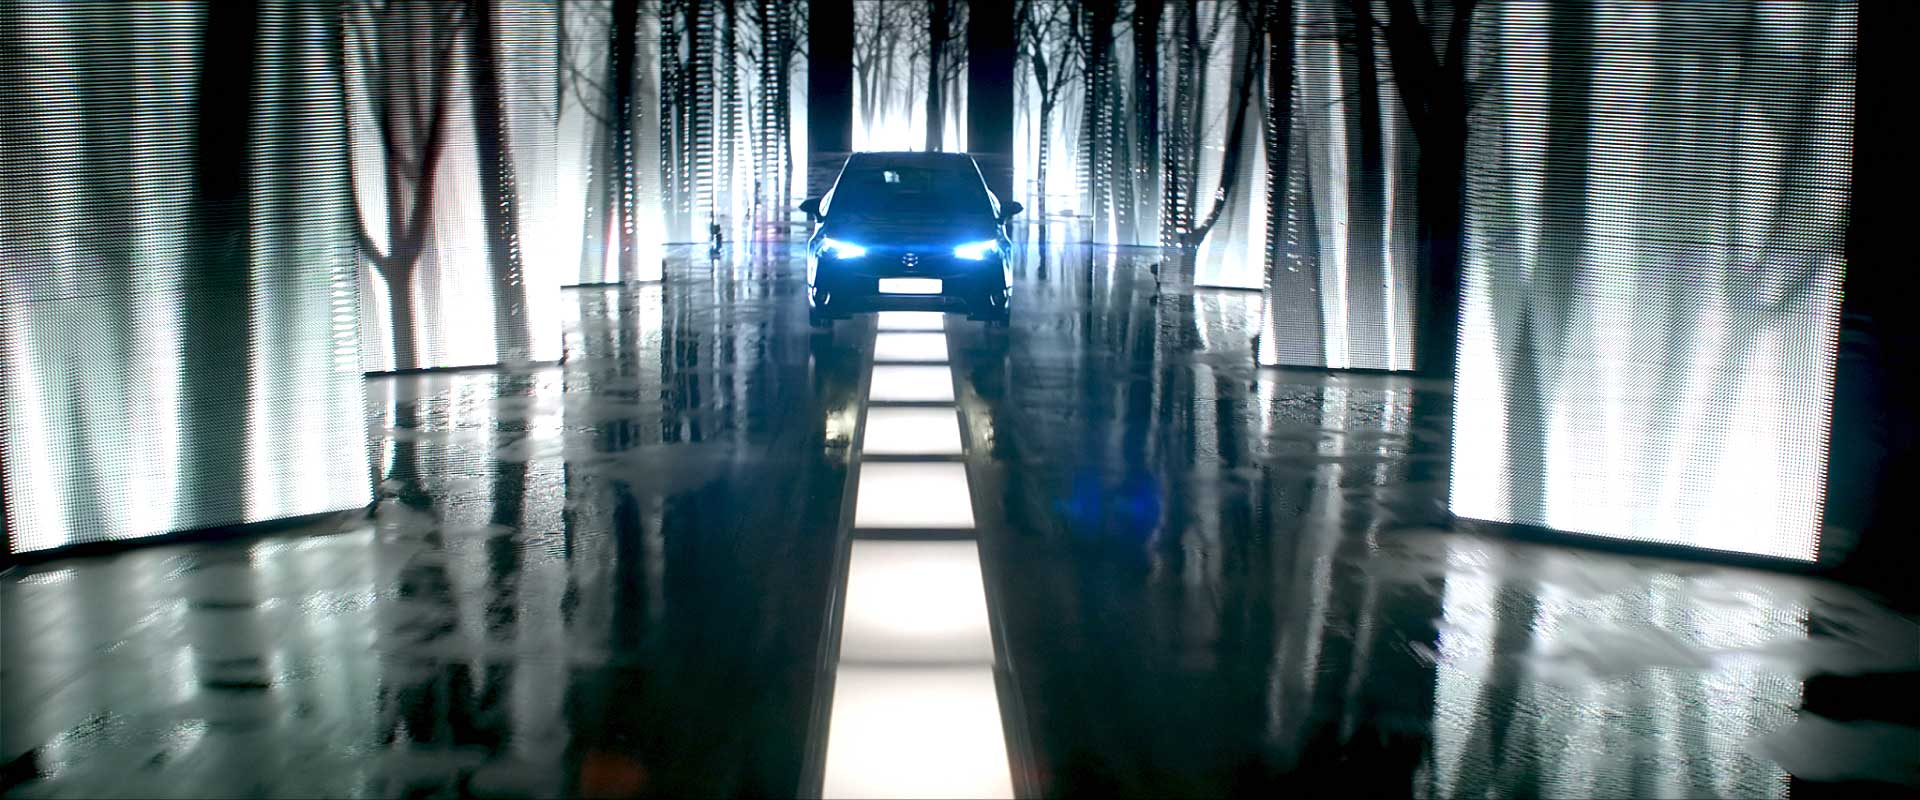 Car on artificial road. Still from Toyota Avensis - Commercial